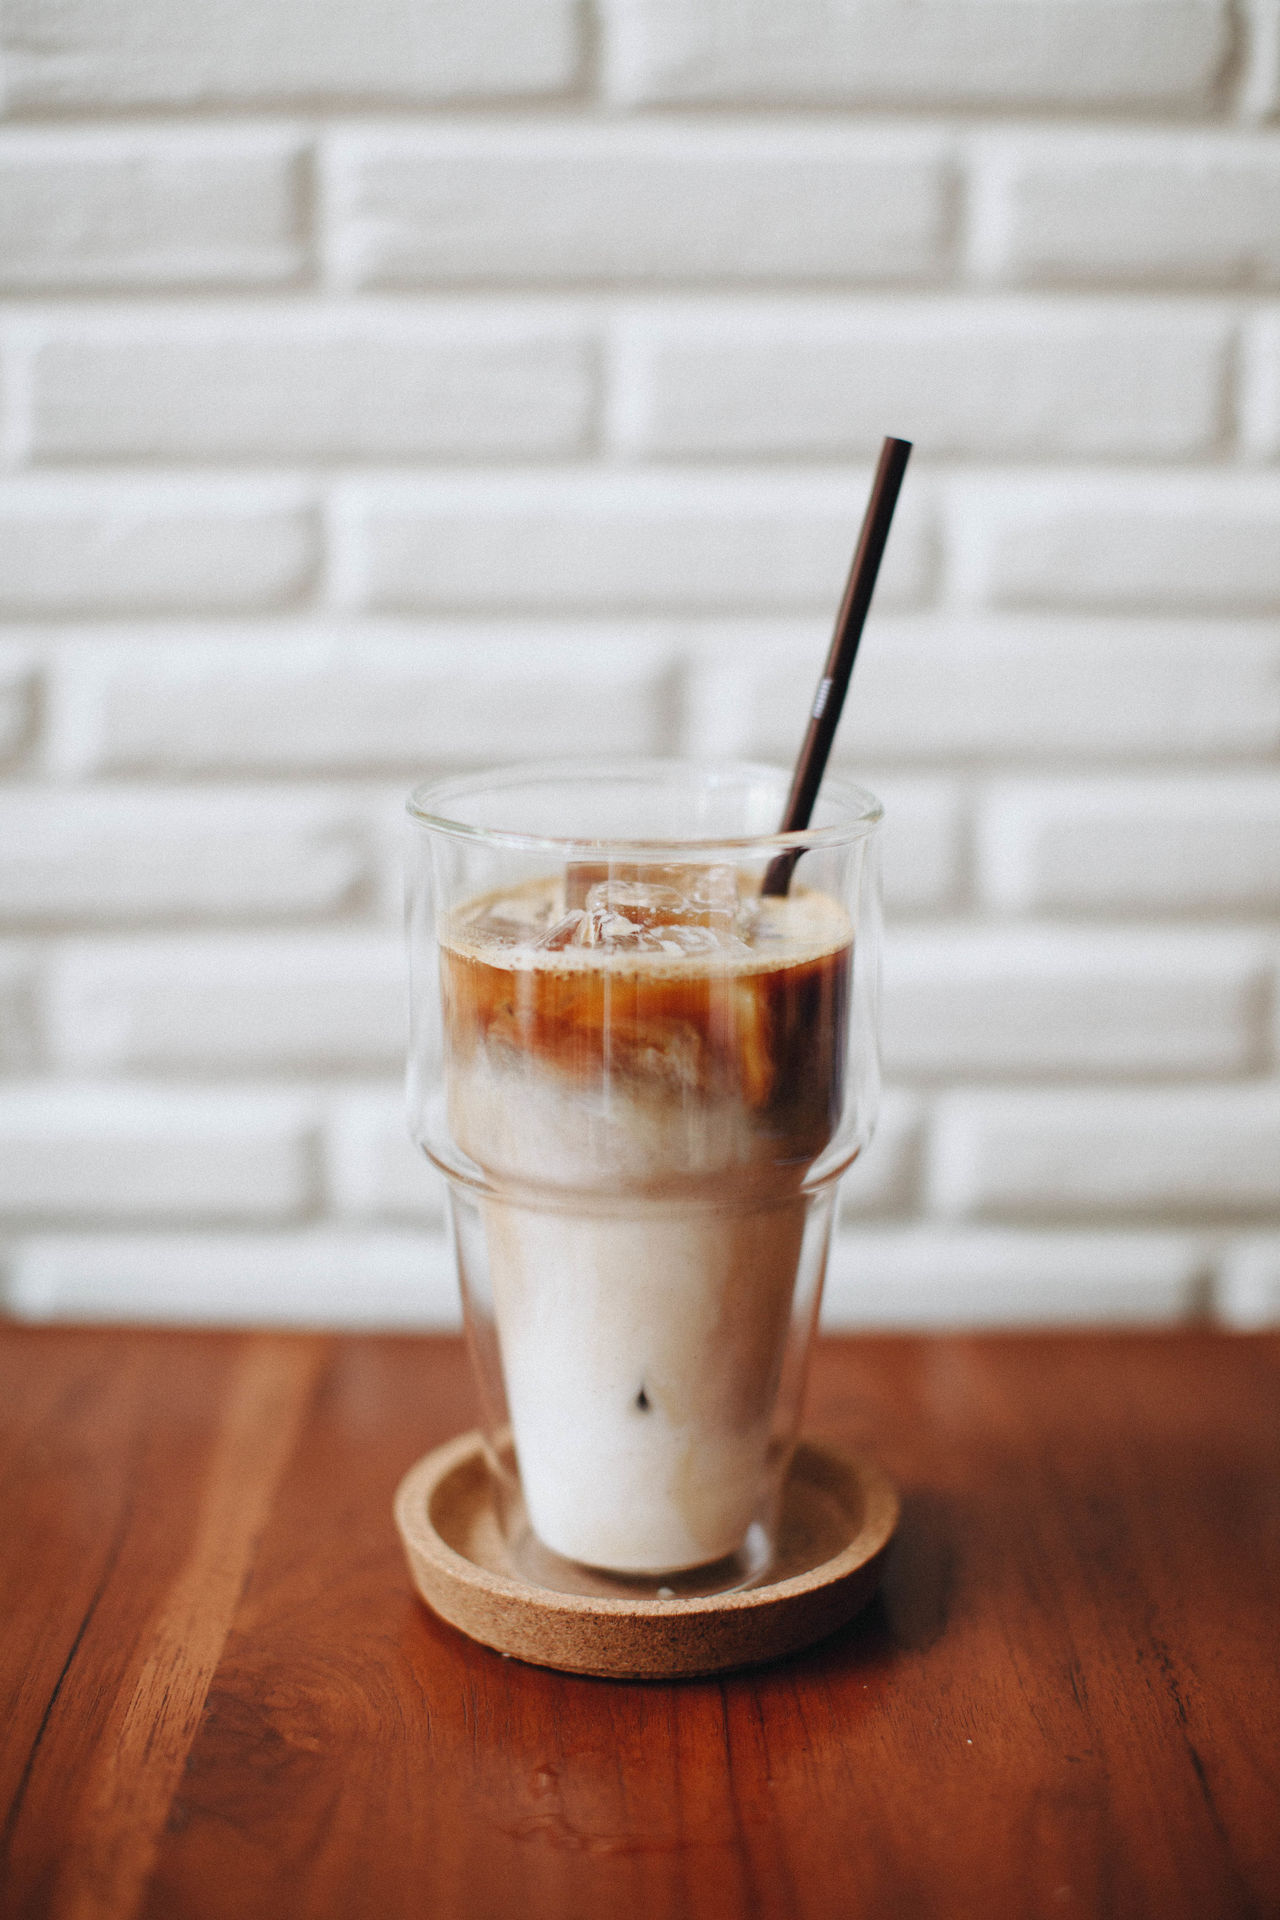 Close-up Coffee Day Drink Drinking Glass Drinking Straw Espresso Food And Drink Freshness Indoors  Latte Latte No People Refreshment Table